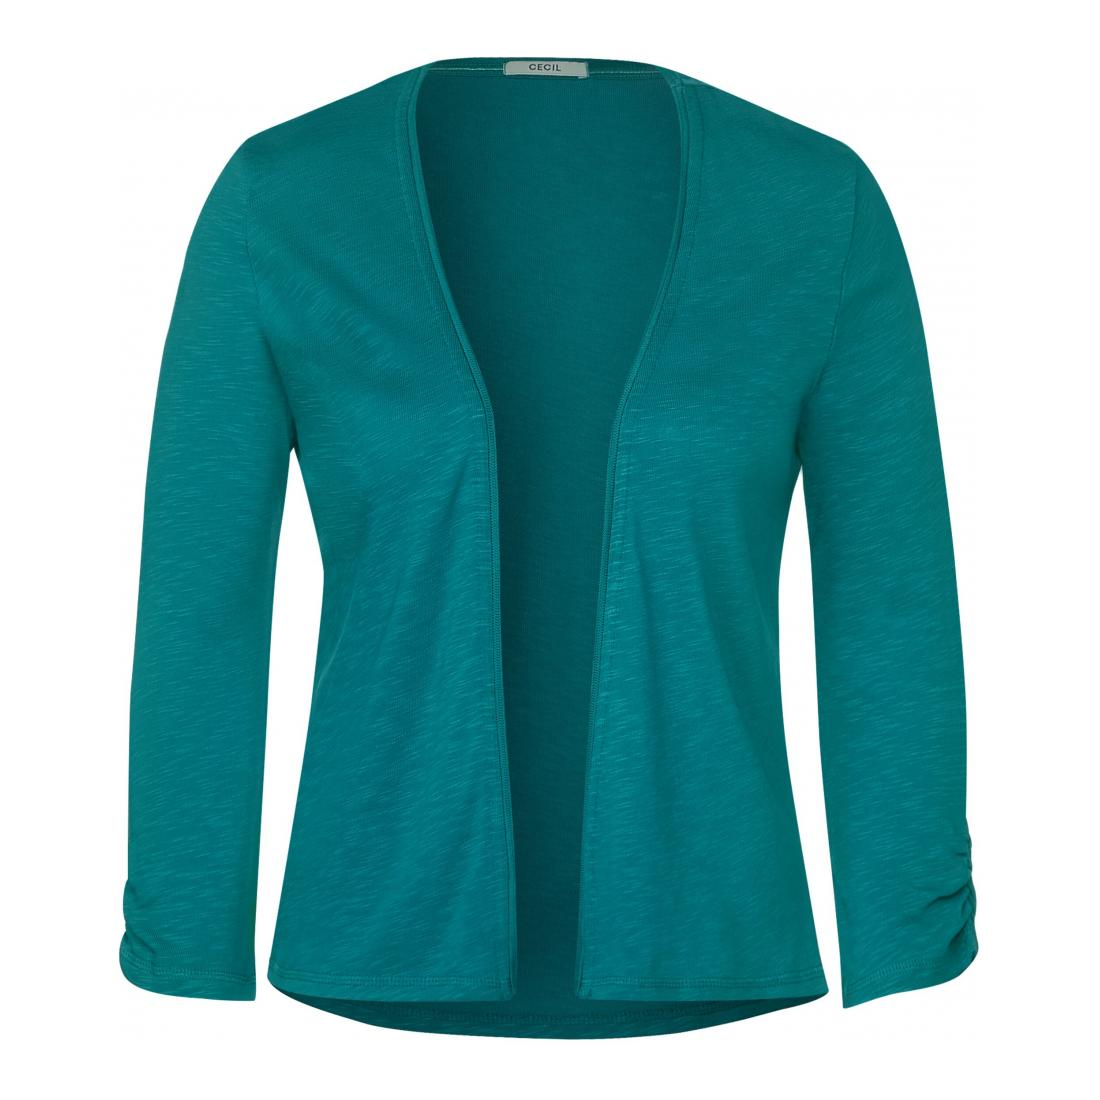 Cecil Cardigan Damen NOS T-Shirtjacket